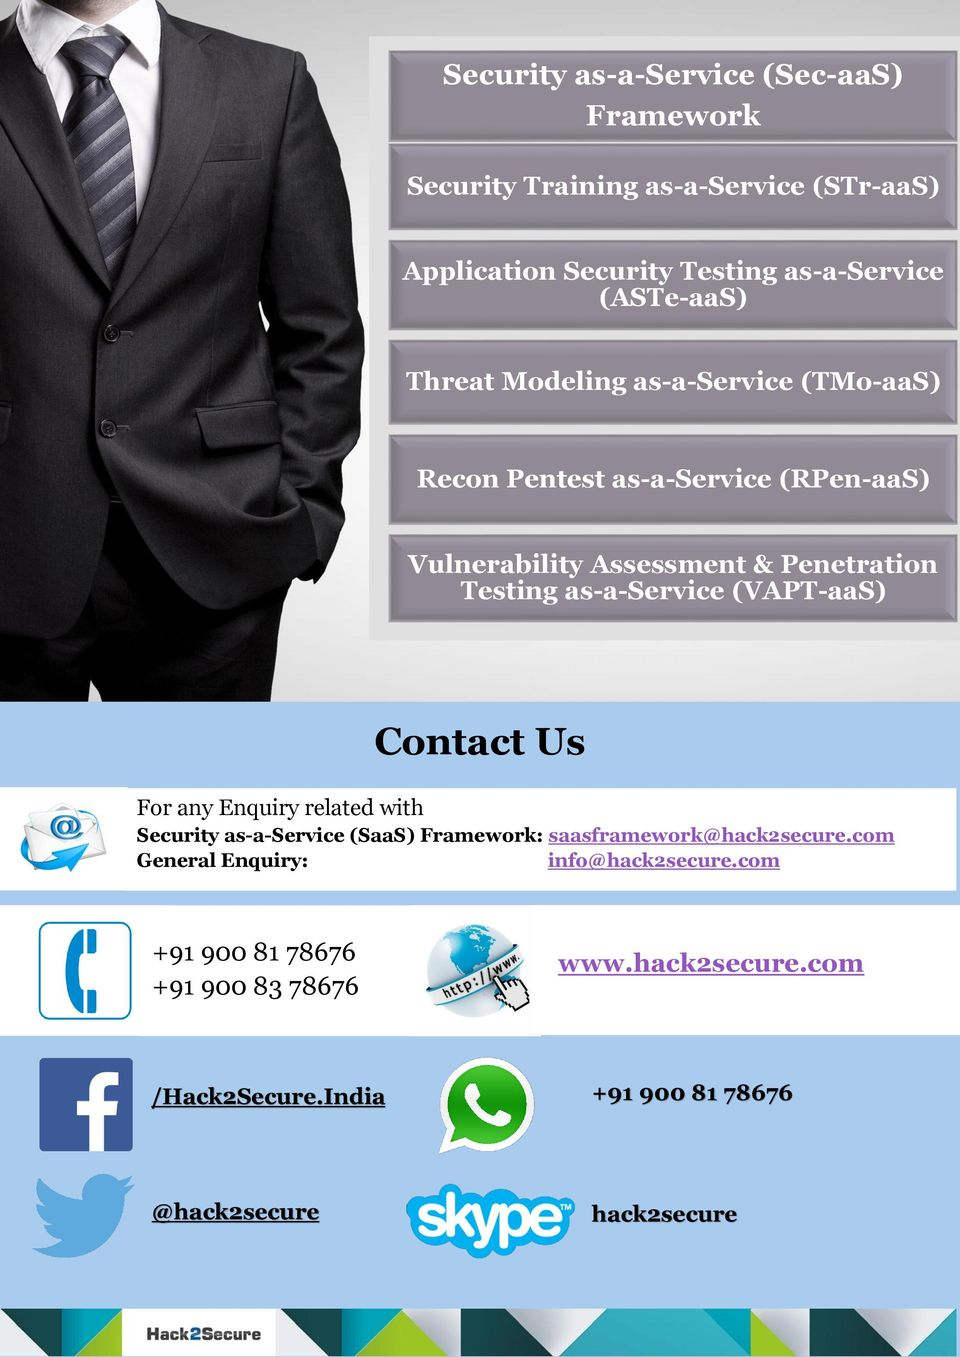 (VAPT-aaS) For any Enquiry related with Contact Us Security as-a-service (SaaS) Framework: saasframework@hack2secure.